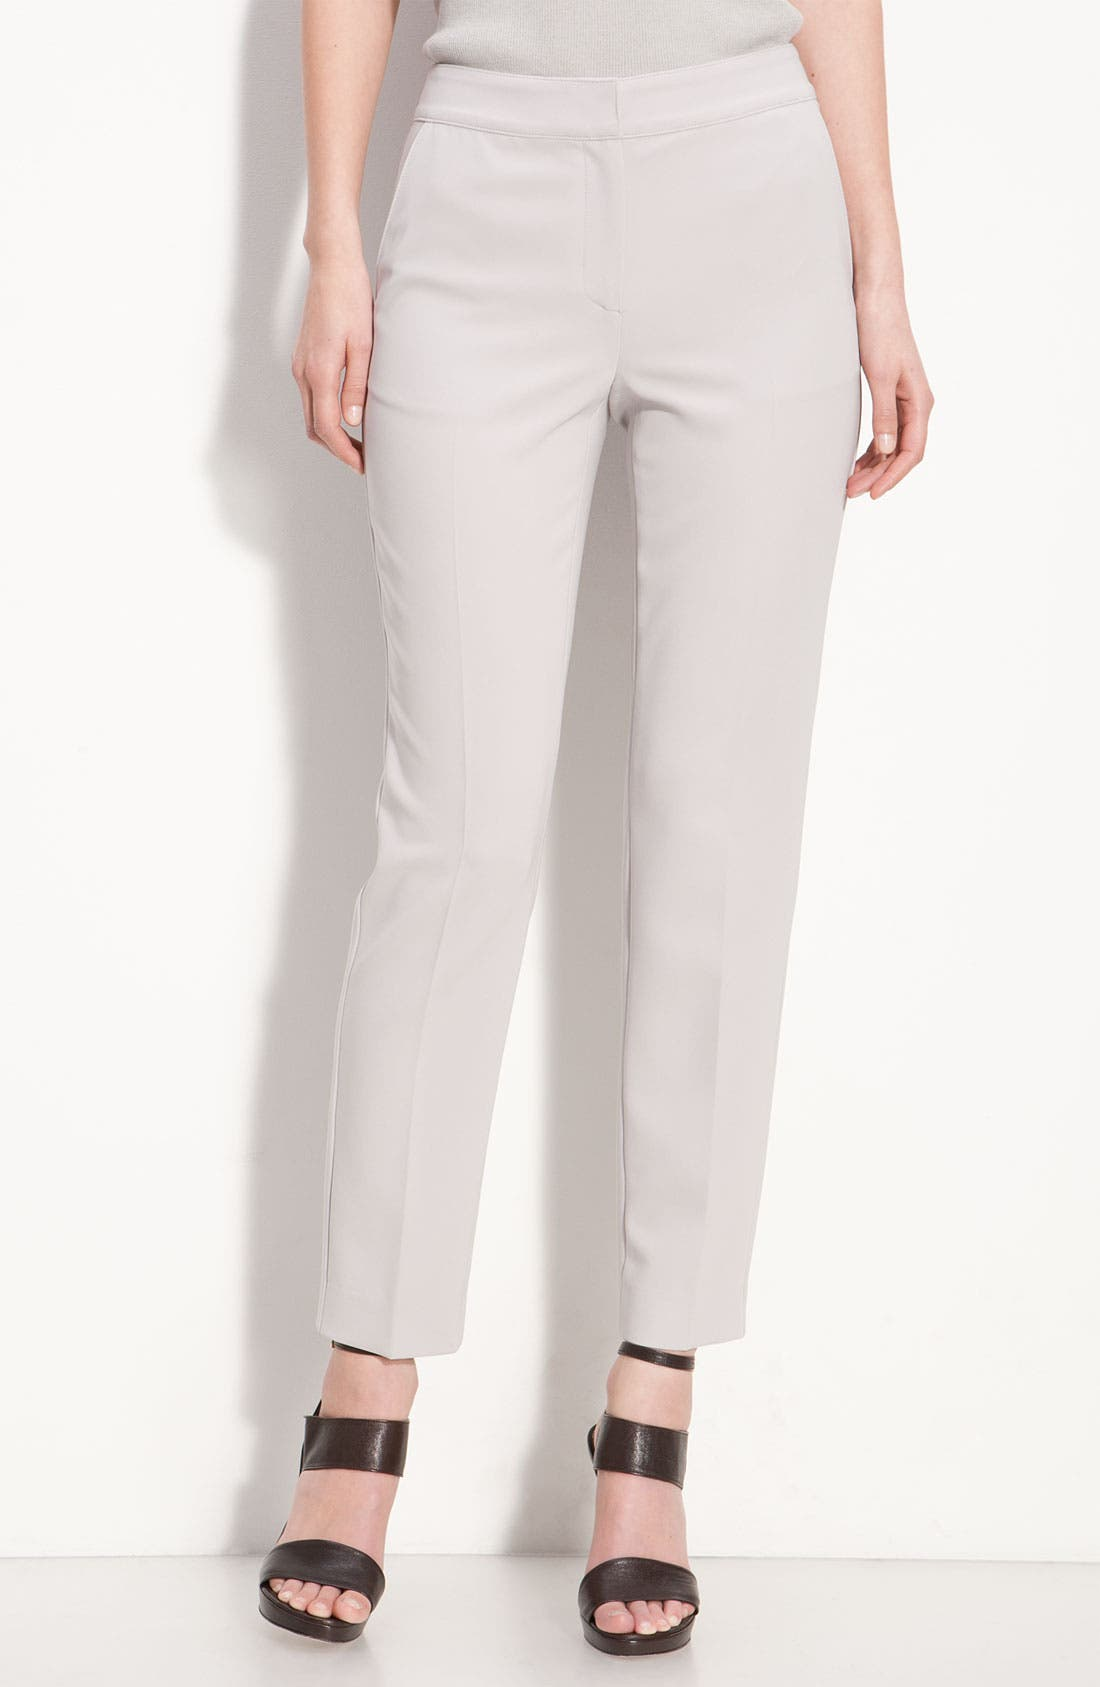 Main Image - St. John Collection Crepe Marocain Crop Pants